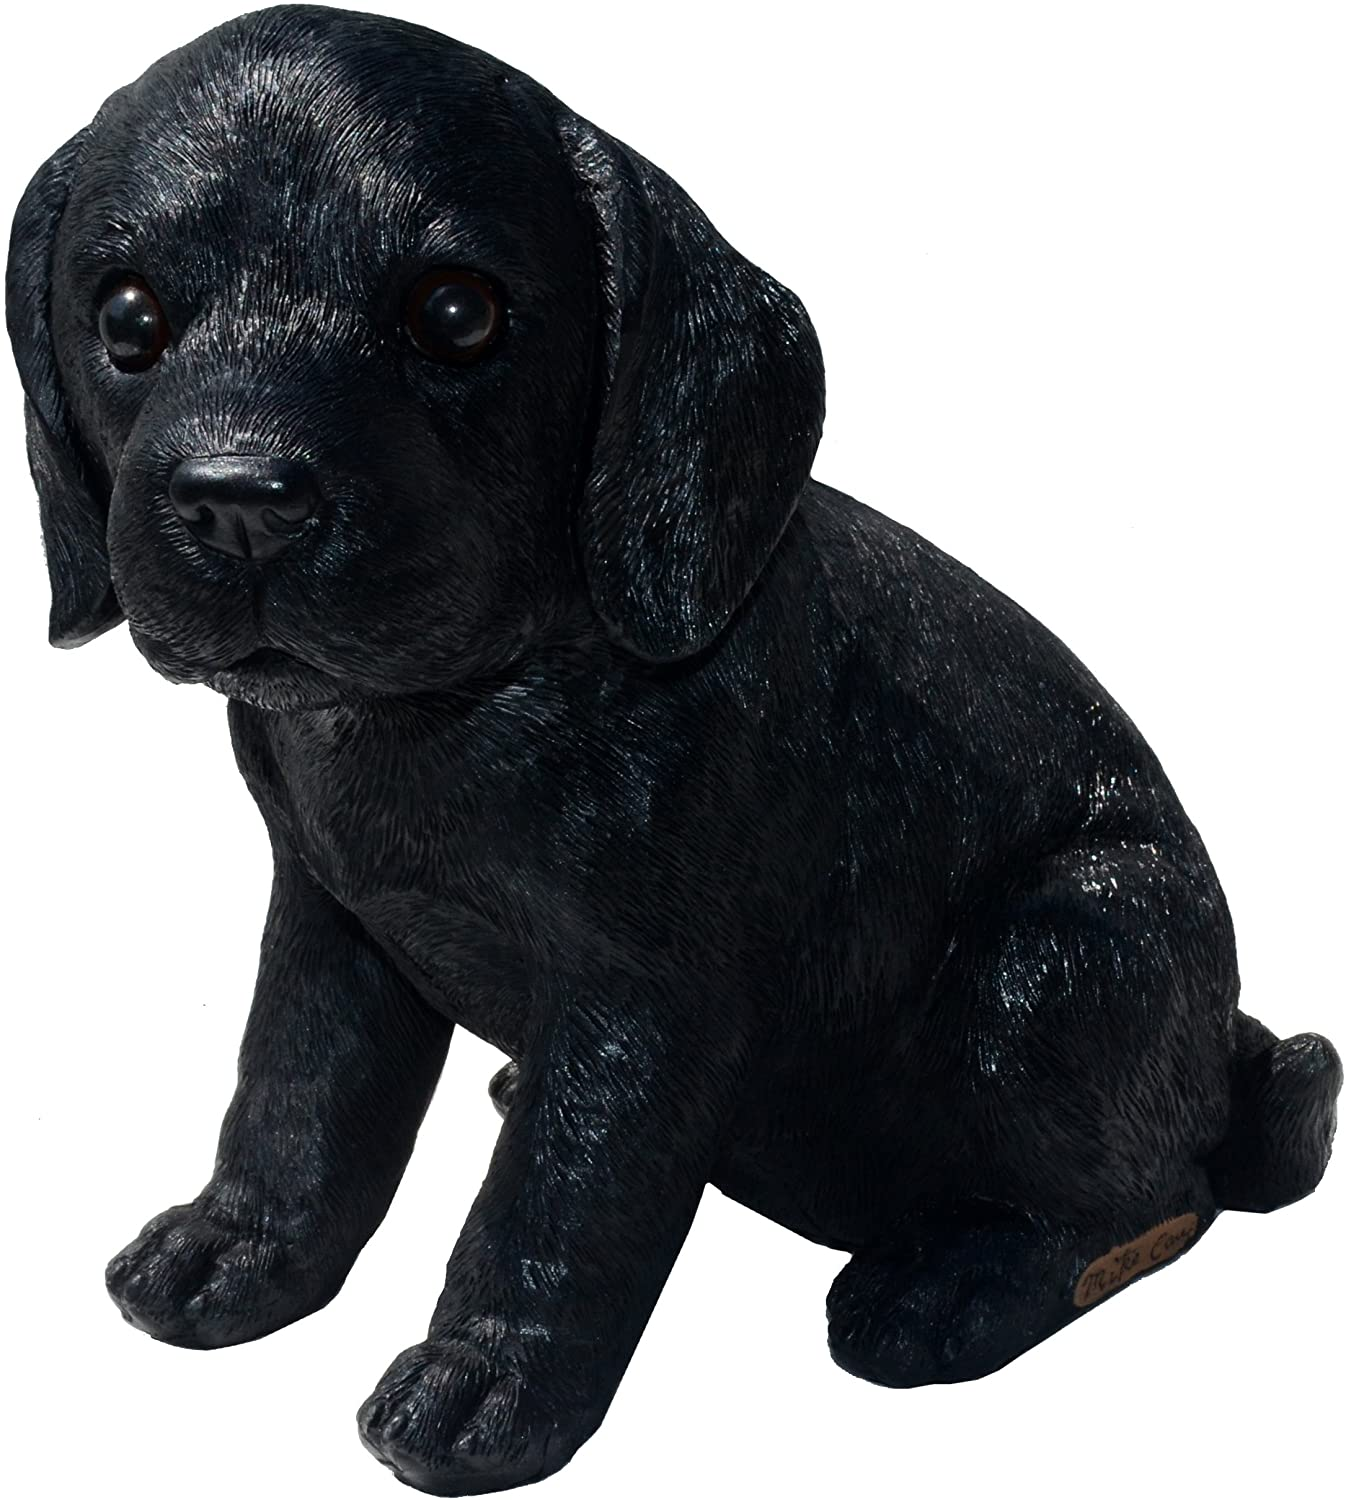 Michael Carr Designs Labrador S Shadow-Black Puppy Love Outdoor Dog Figurine for Gardens, patios and lawns (80099)